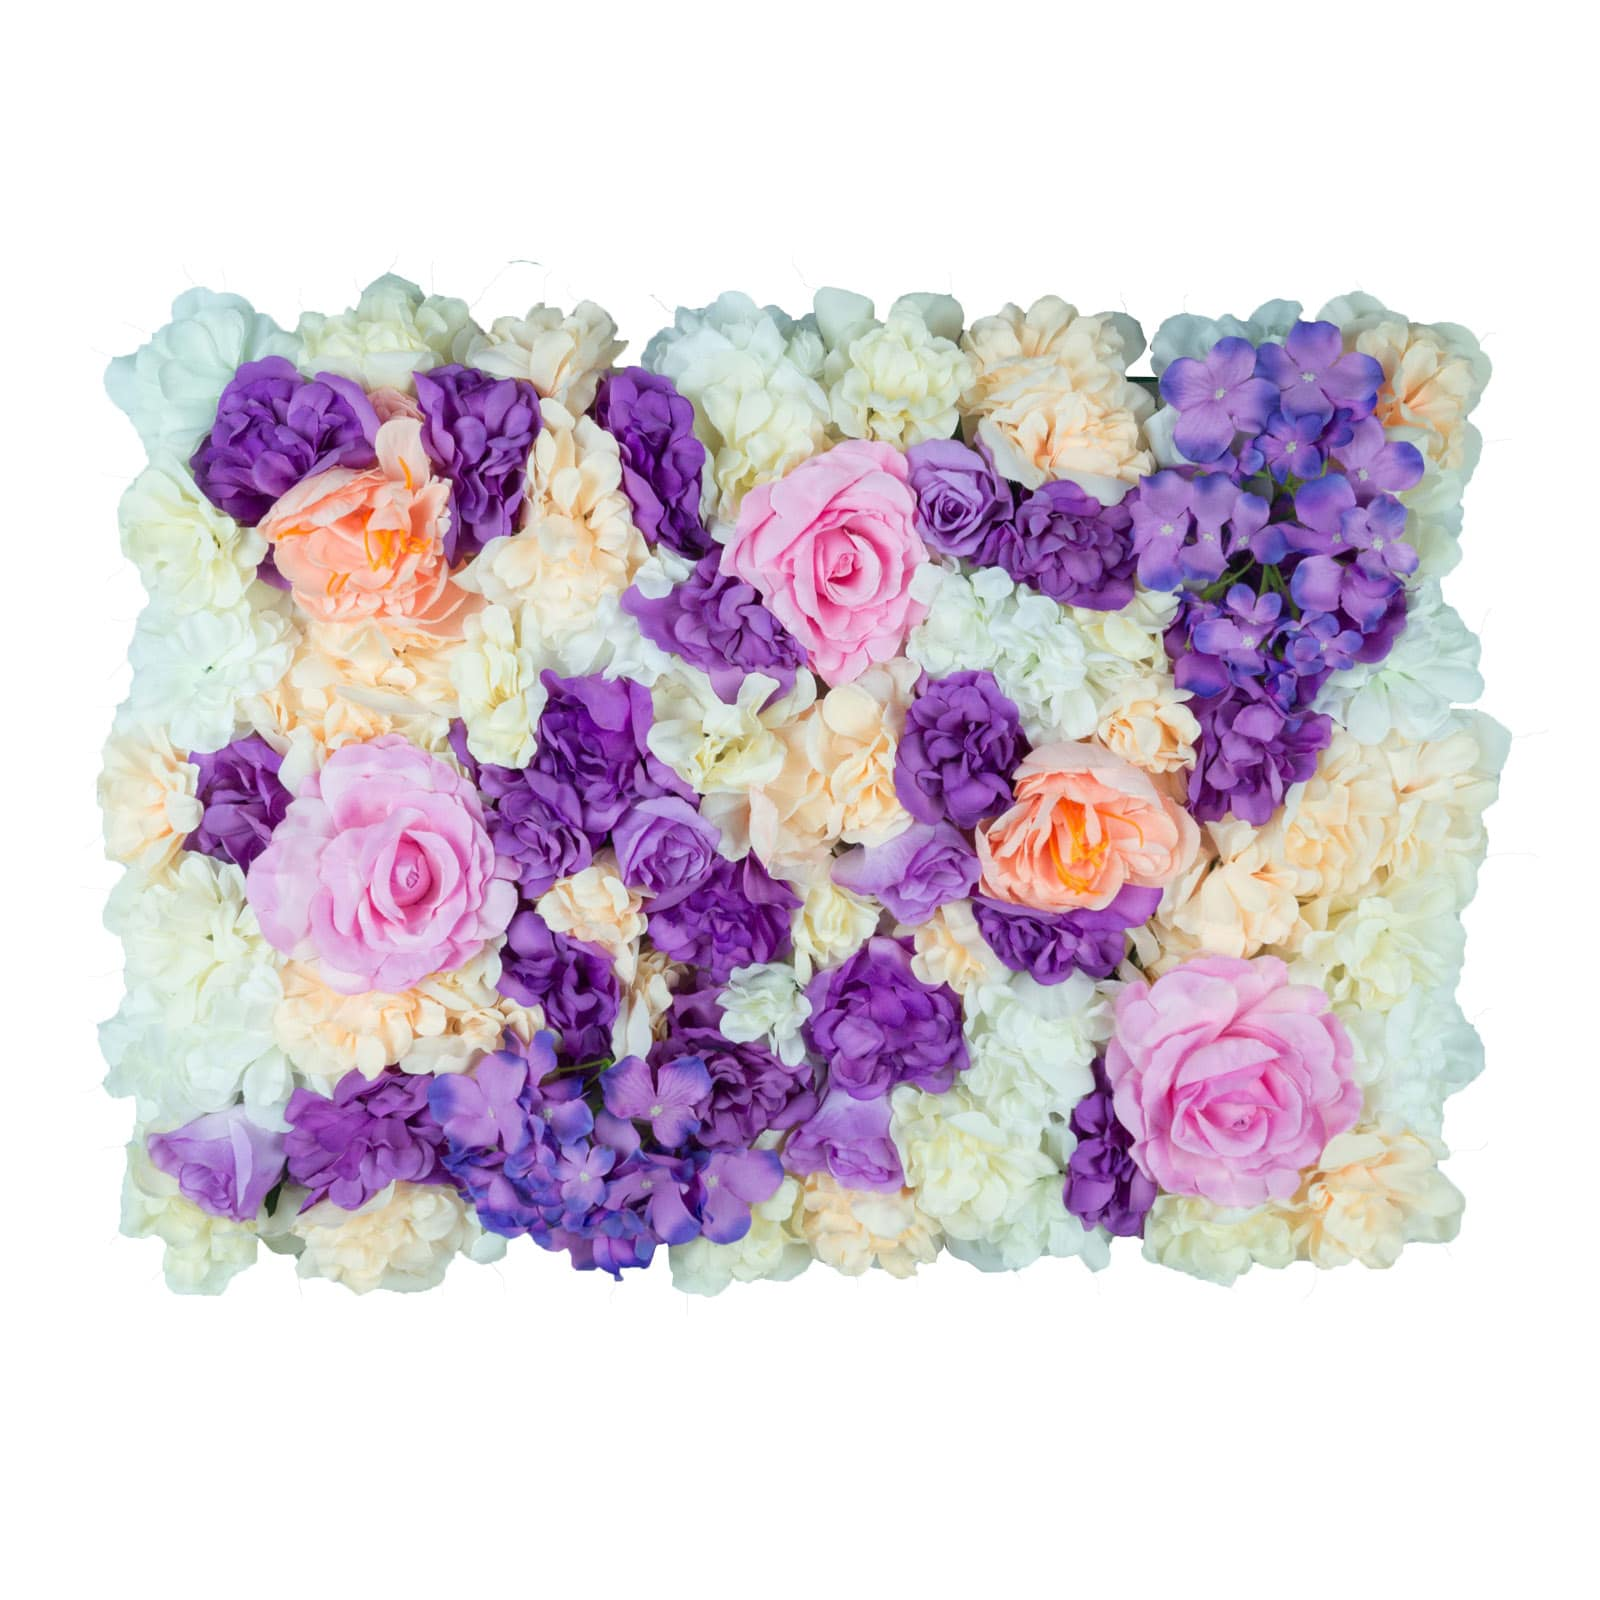 Mixed Pastel Flower Wall Panels Create Amazing Backdrops